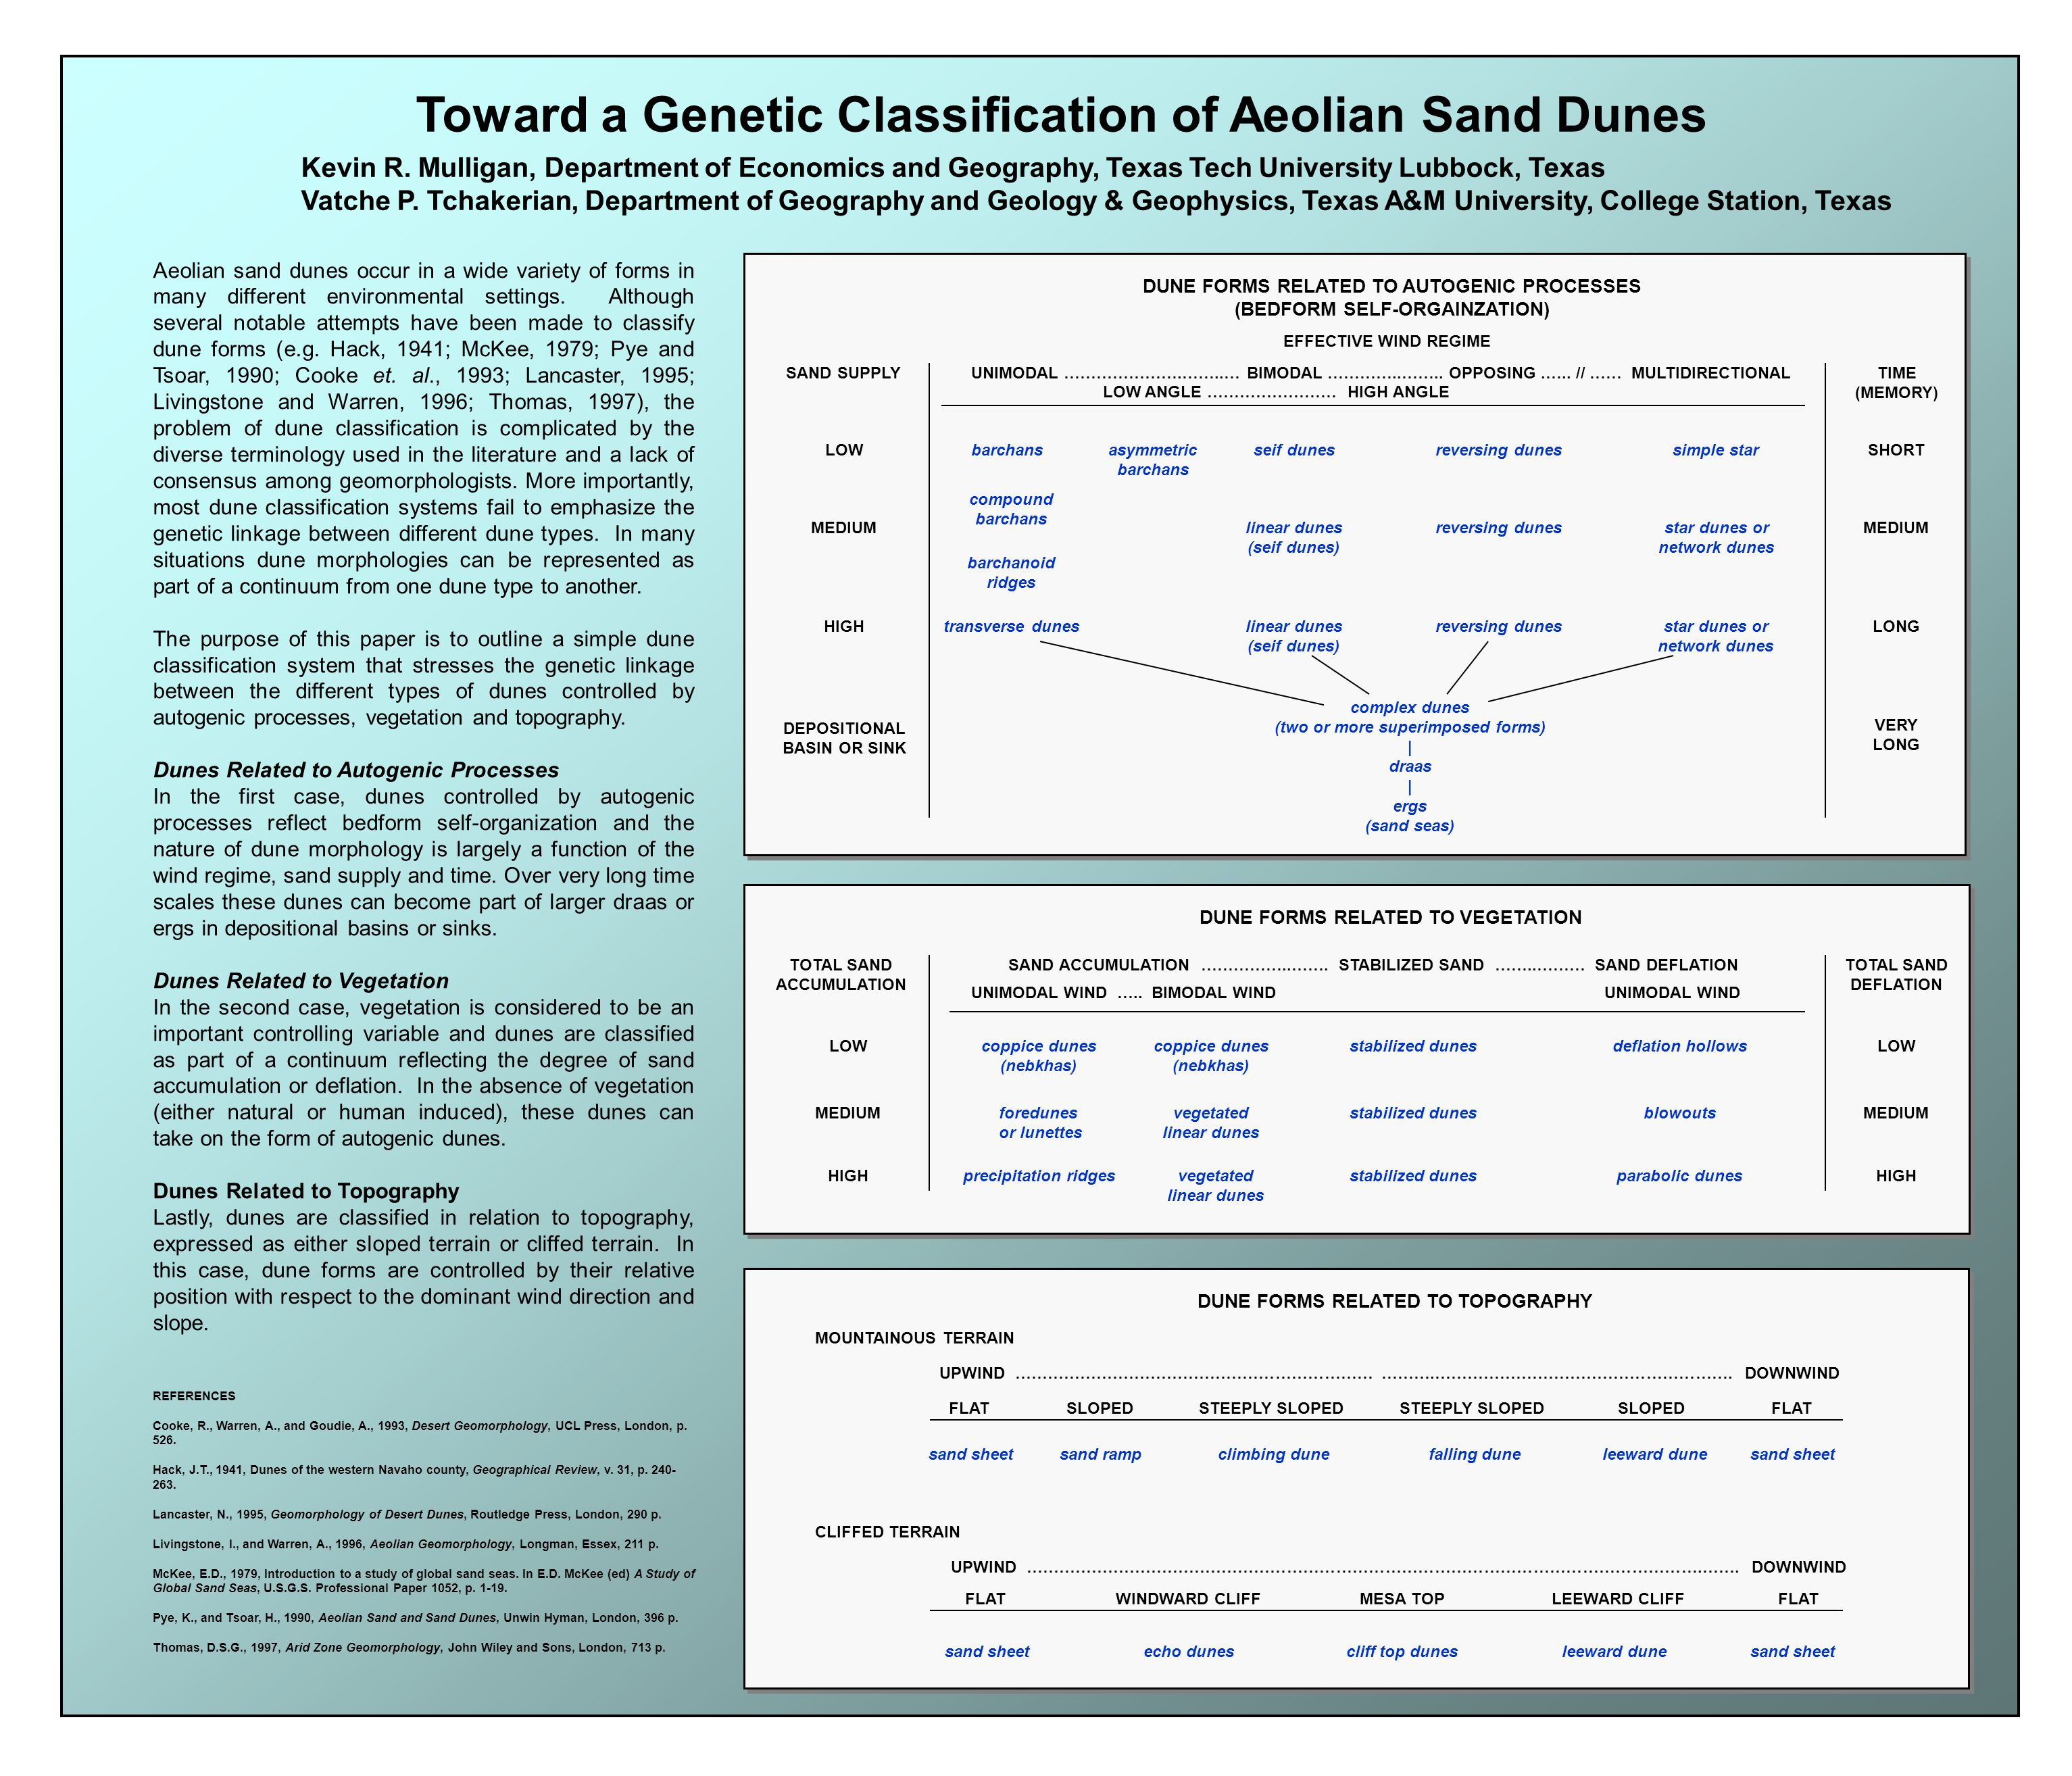 Toward a Genetic Classification of Aeolian Sand Dunes Kevin R. Mulligan, Department of Economics and Geography, Texas Tech University Lubbock, Texas V